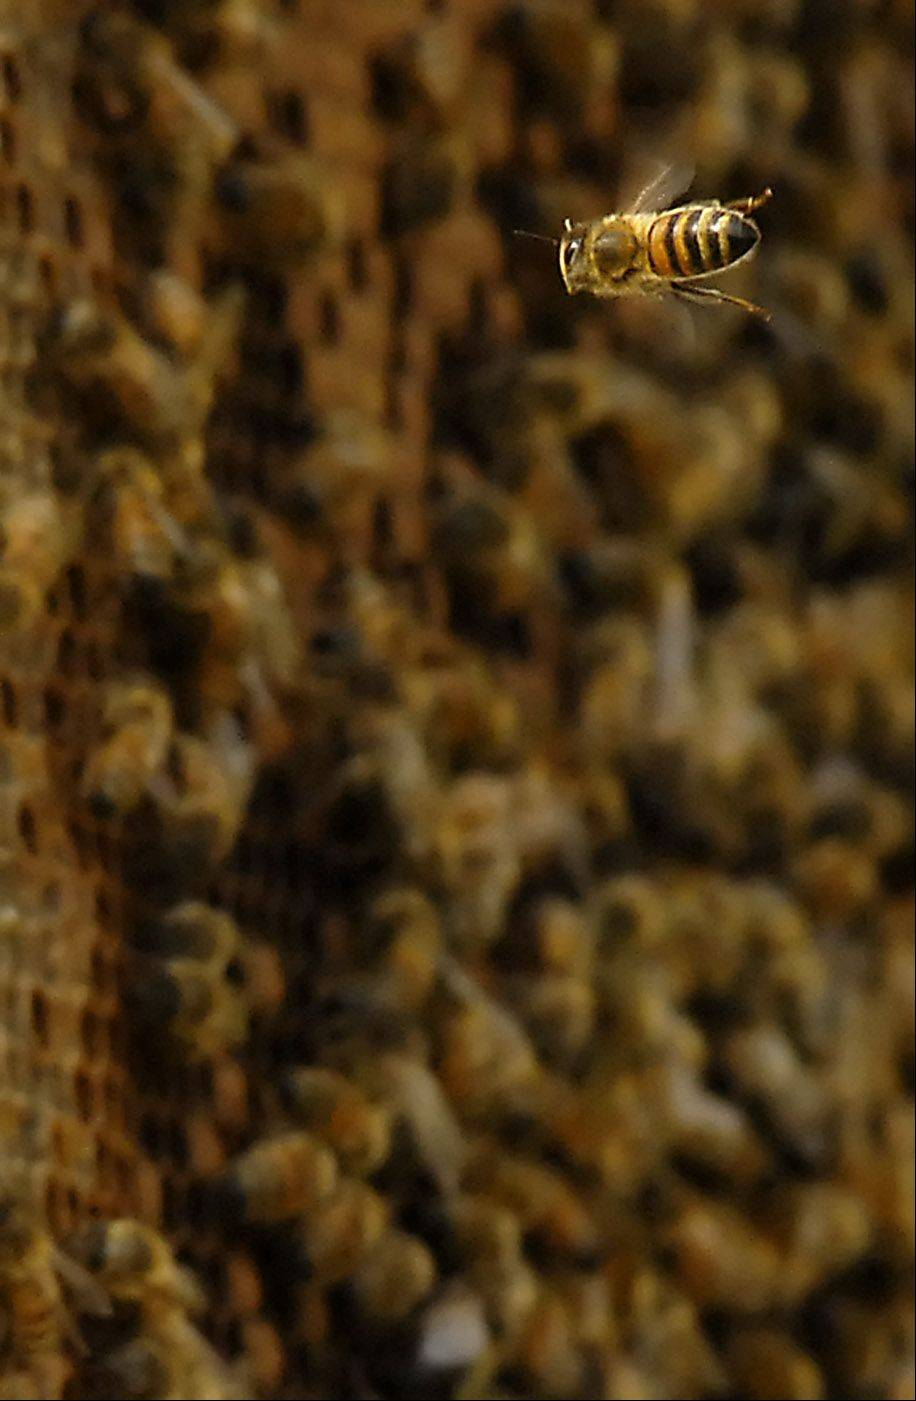 Learn the science and art of beekeeping during a three-part series at McHenry County College.